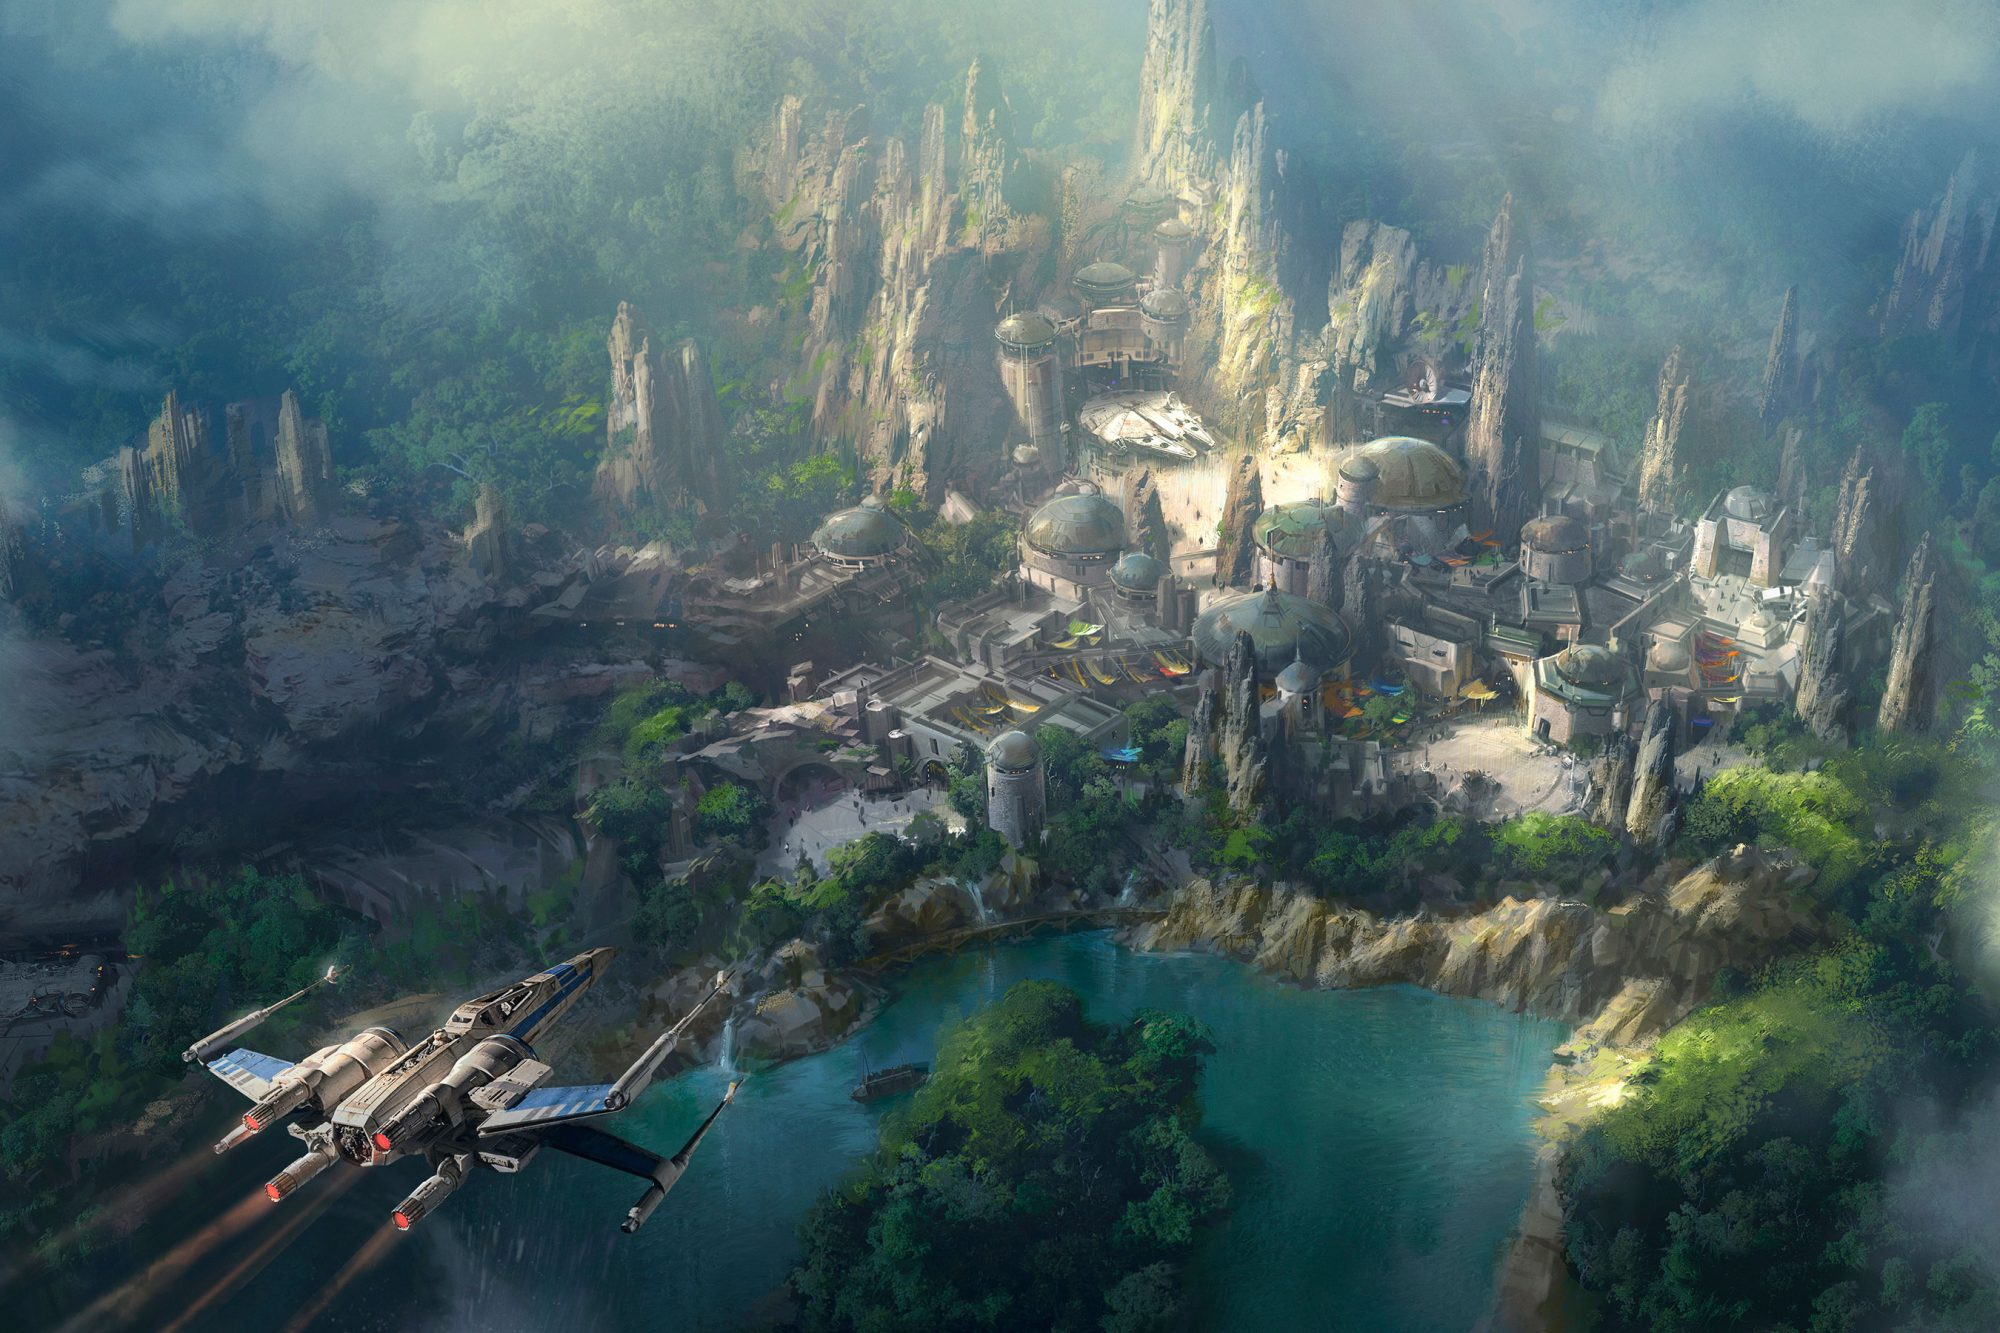 Star Wars-Themed Land At Disneyland Resort